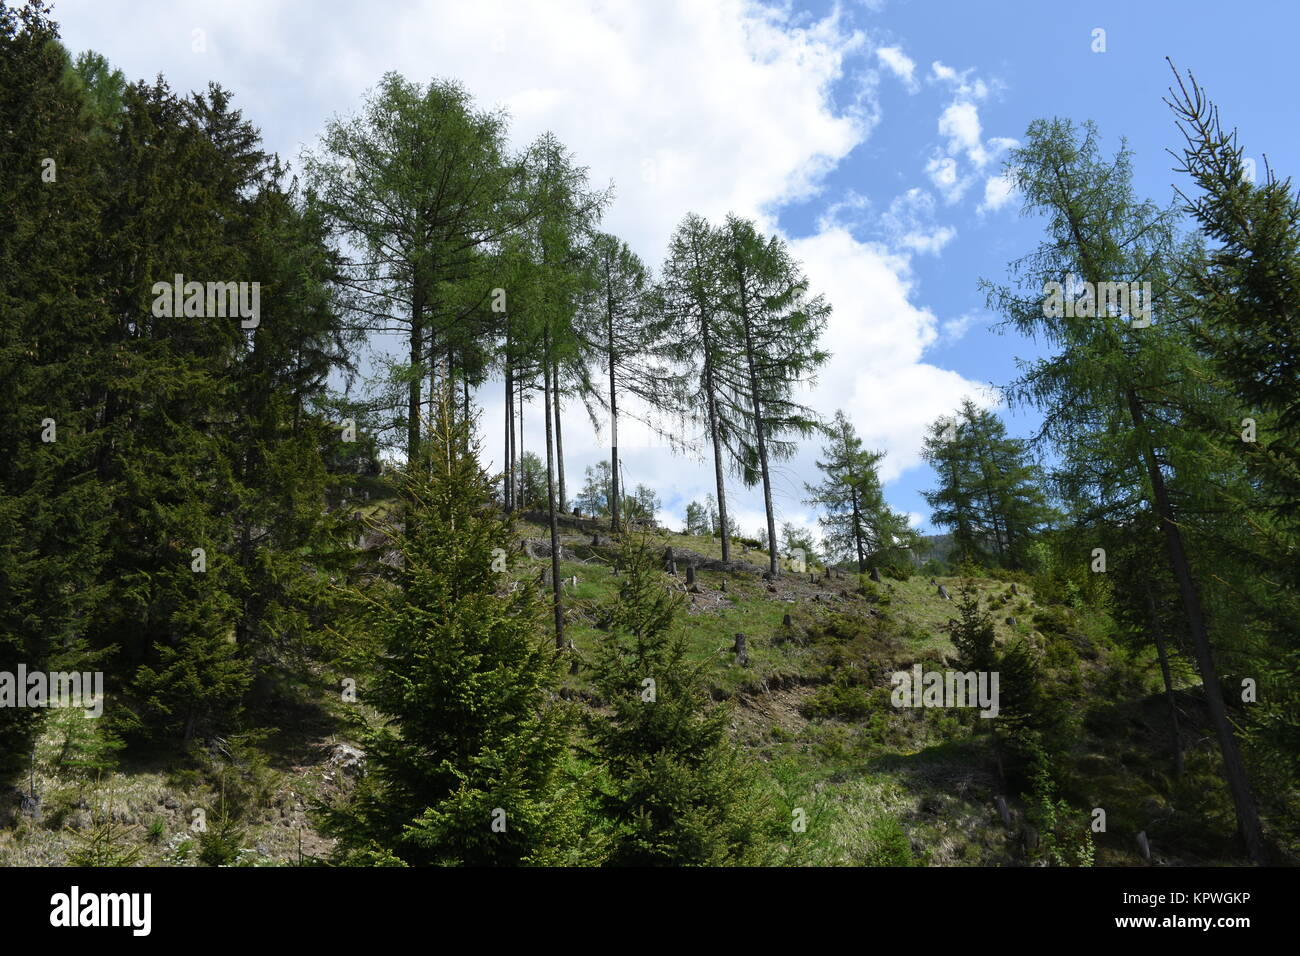 forest,protected forest,mountain forest,coniferous forest,trees,east tyrol,matrei,gloss Stock Photo